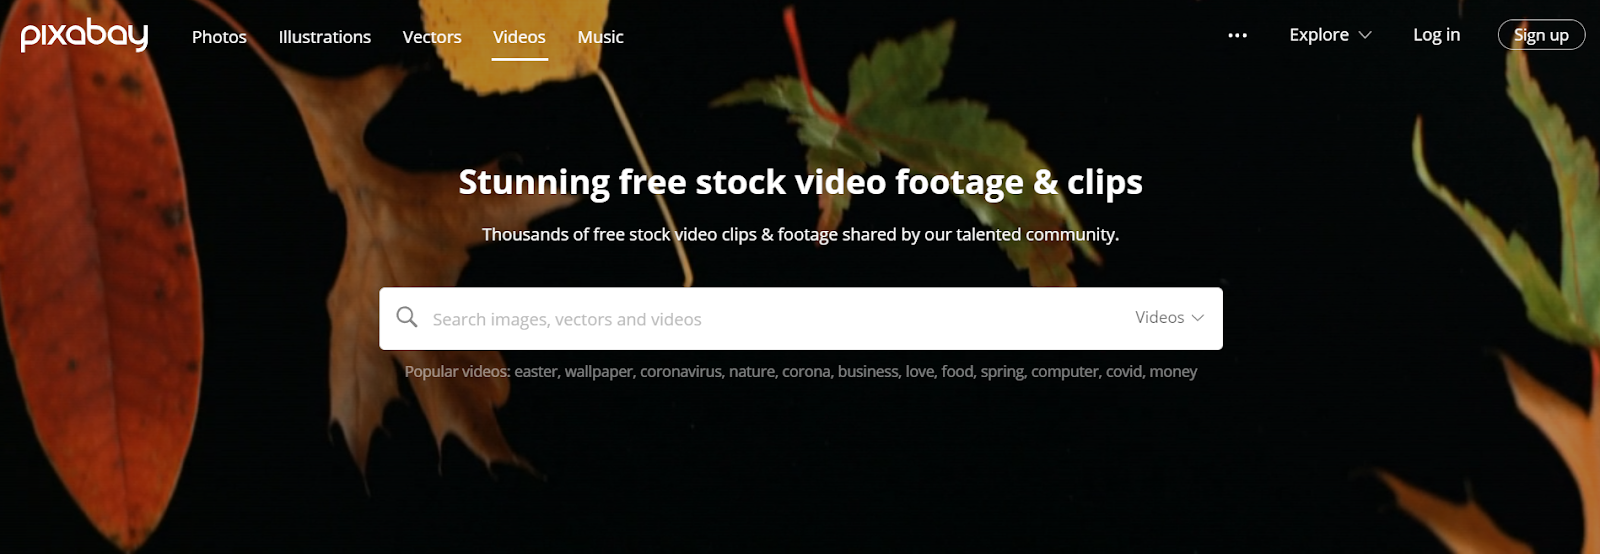 free stock video webiste is pixabay